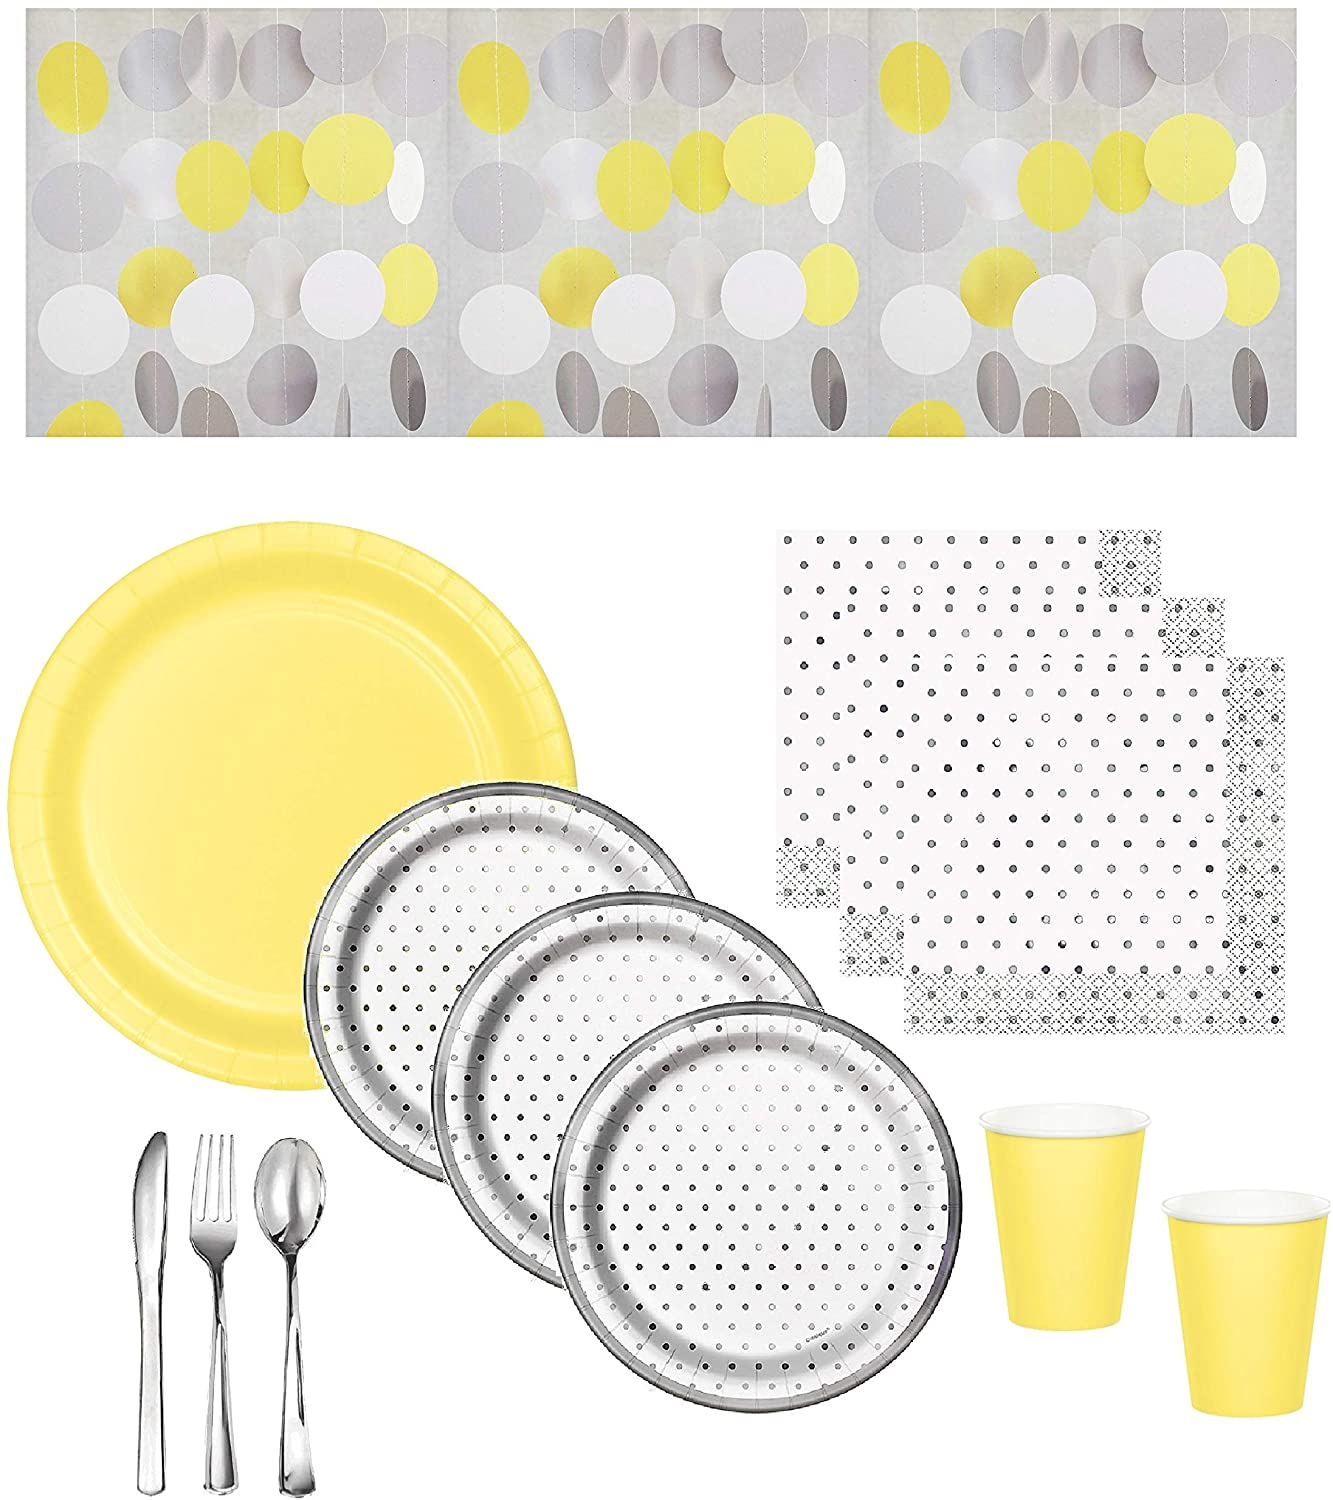 Gender Neutral Baby Shower Supplies - Gray Dot Plates & Napkins With Yellow Plates & Cups, Coordinating Hanging String Decorations & Shiny Silver Premium Quality Plasticware - Serves 16 Guests